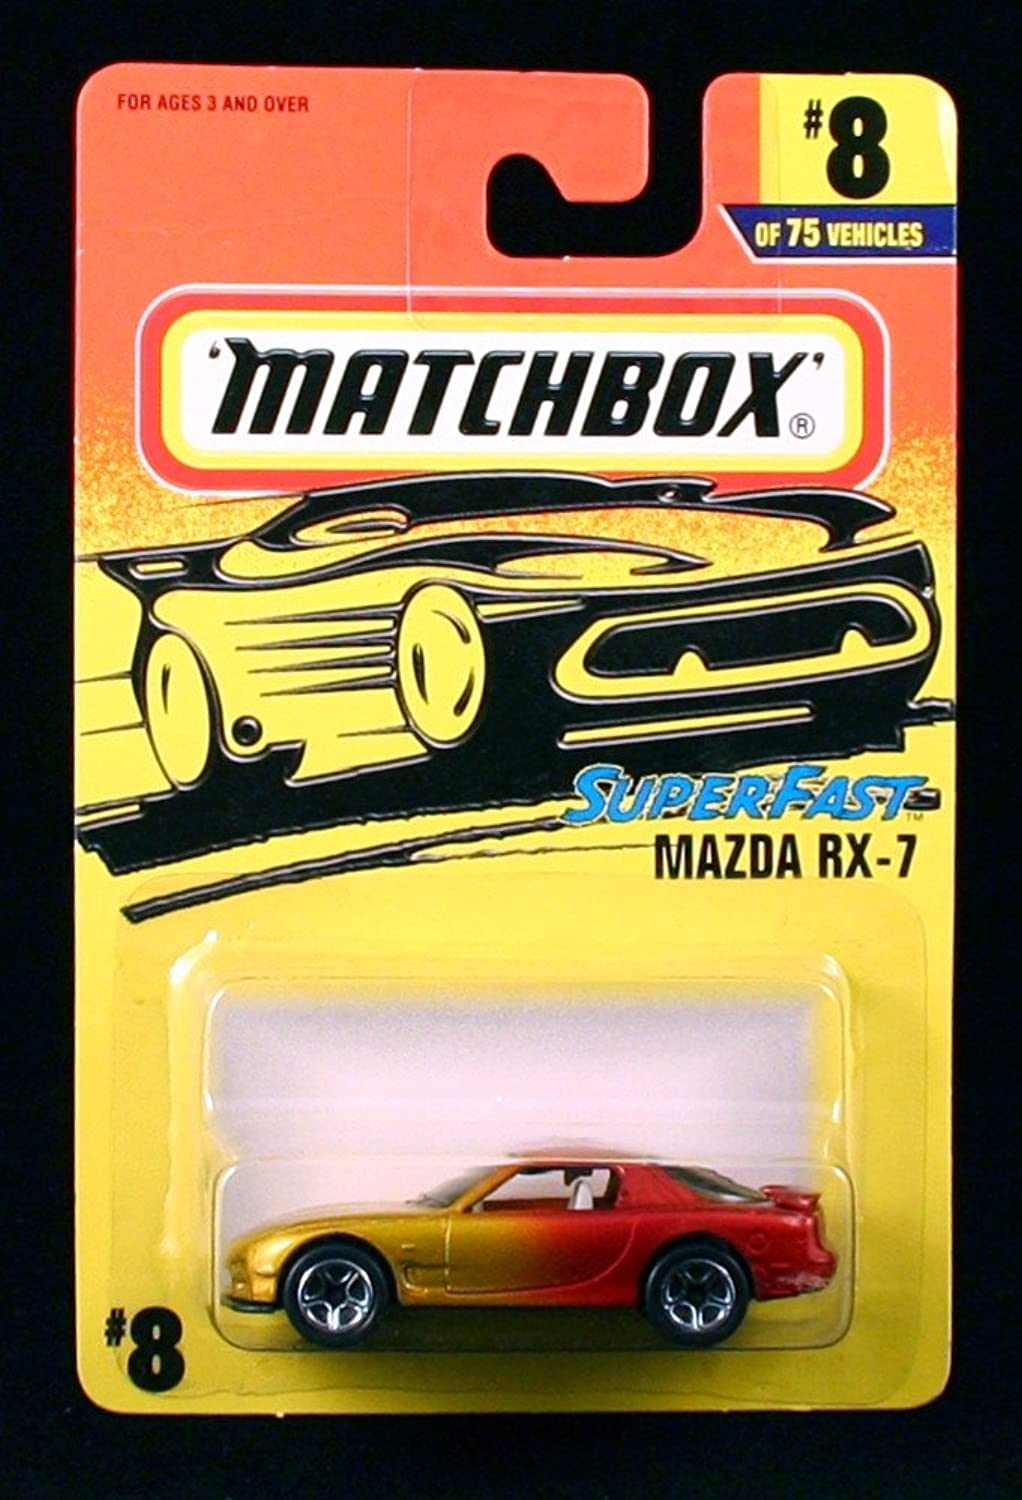 MAZDA RX-7 Superfast Series MATCHBOX 1997 Basic Die-Cast Vehicle ( 8 of 75) by Matchbox